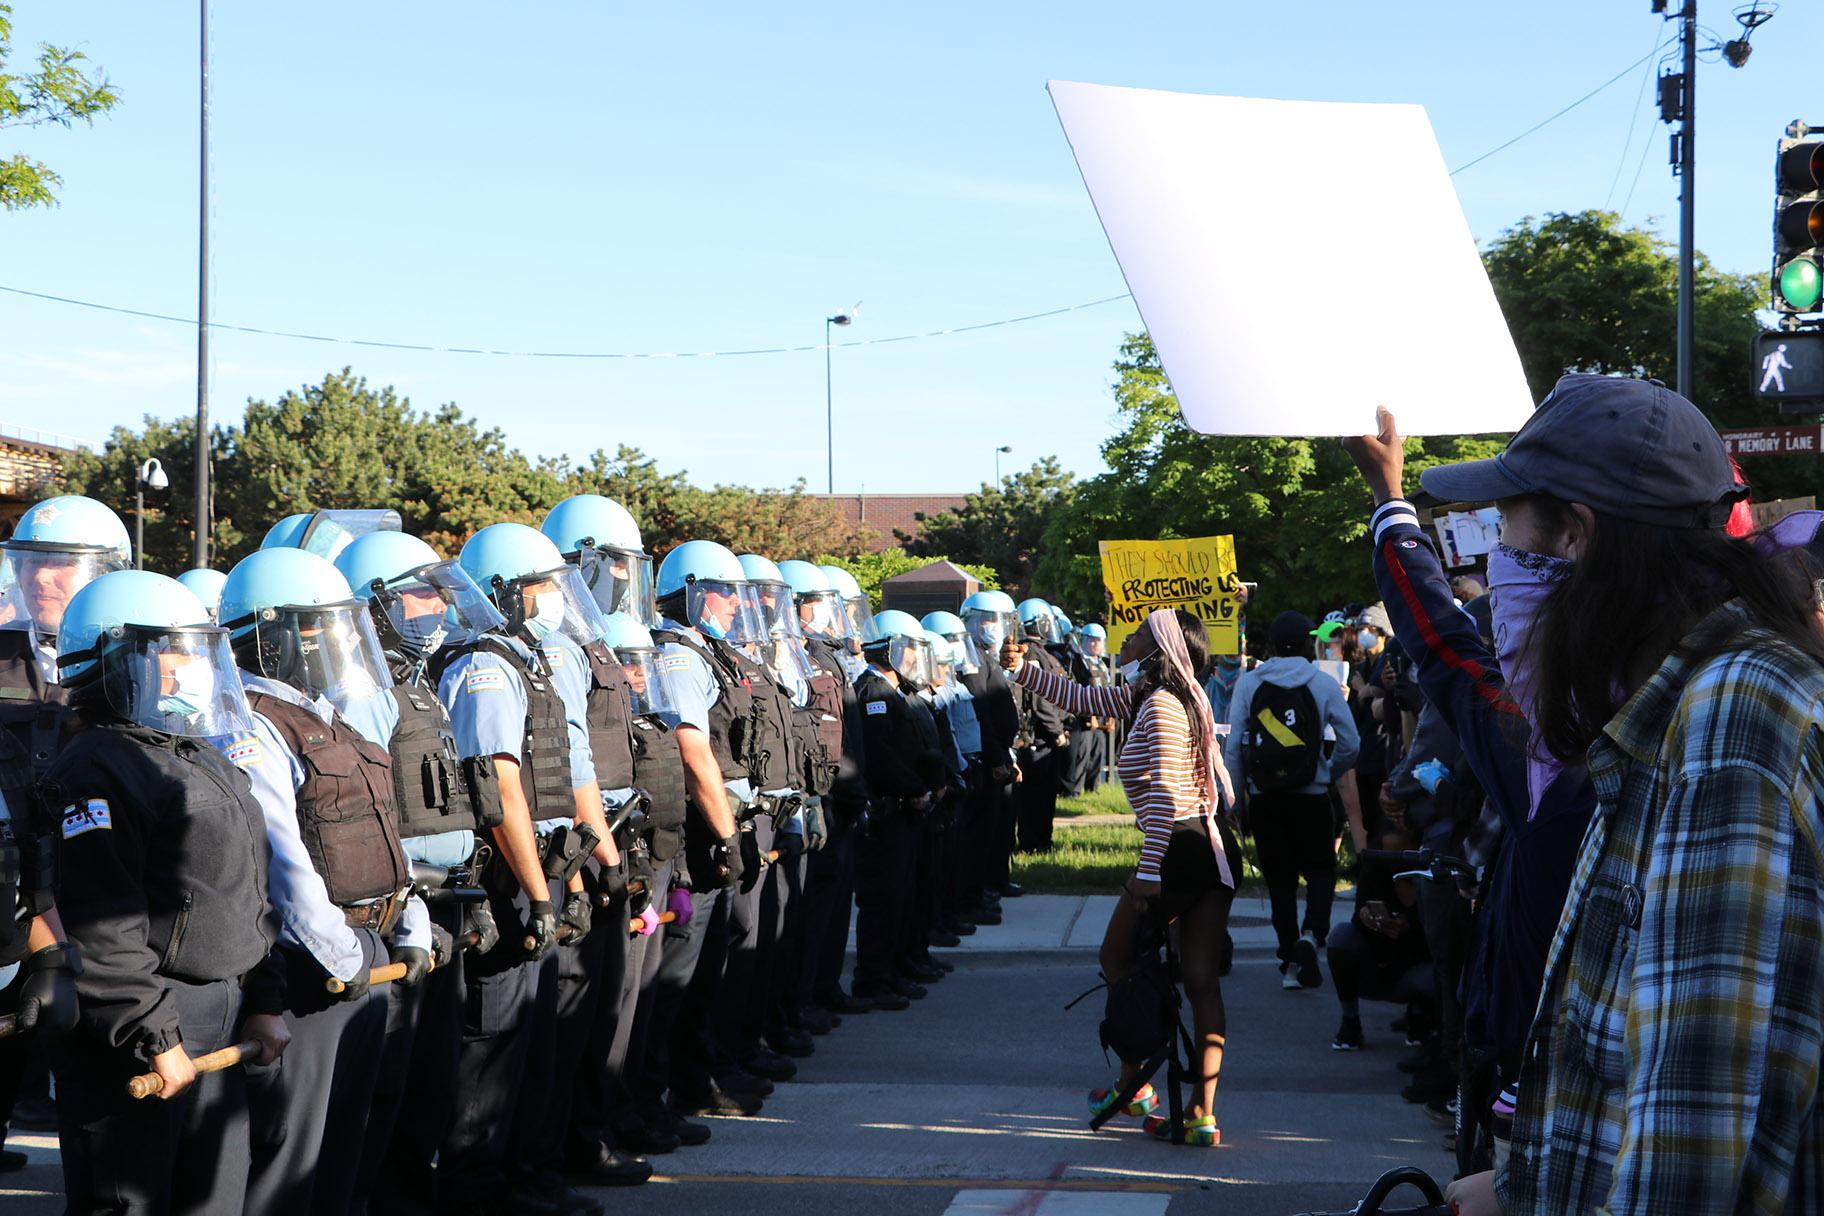 Protesters yell at a line of police officers at State and 35th streets, about 3 miles south of the Loop, where police set up a blockade. (Evan Garcia / WTTW News)